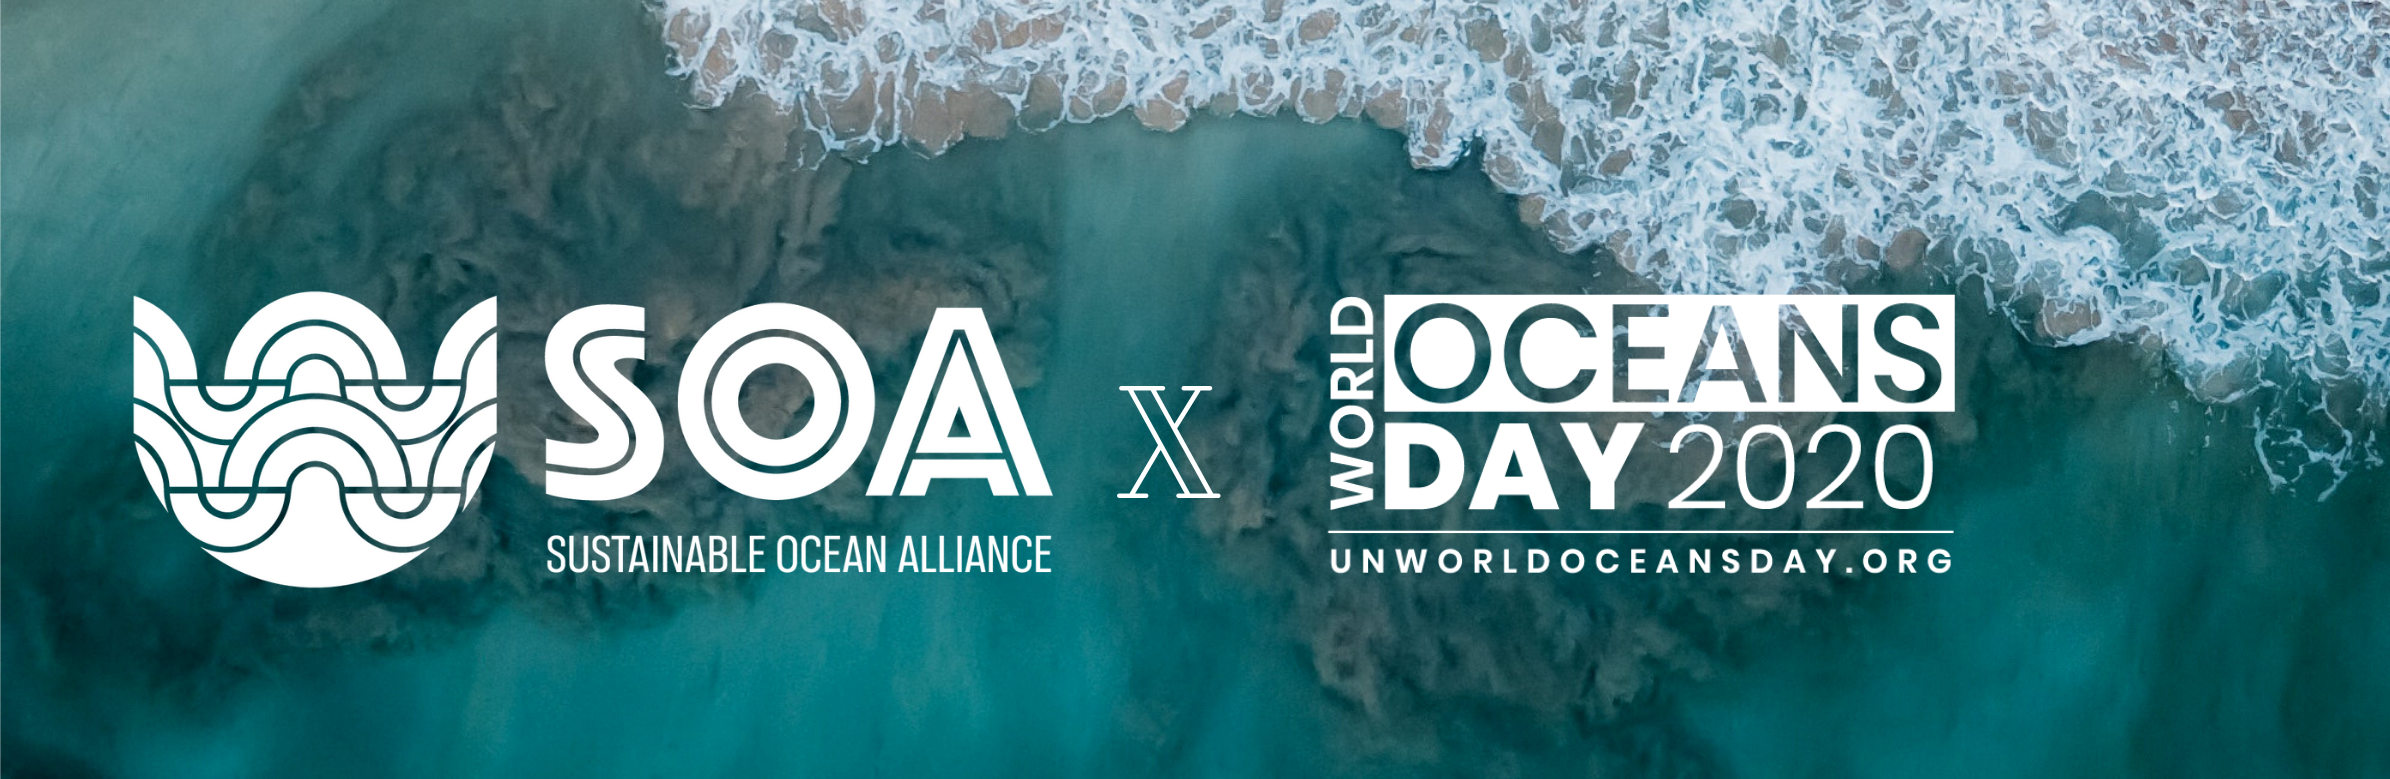 OLL UN world oceans day email header